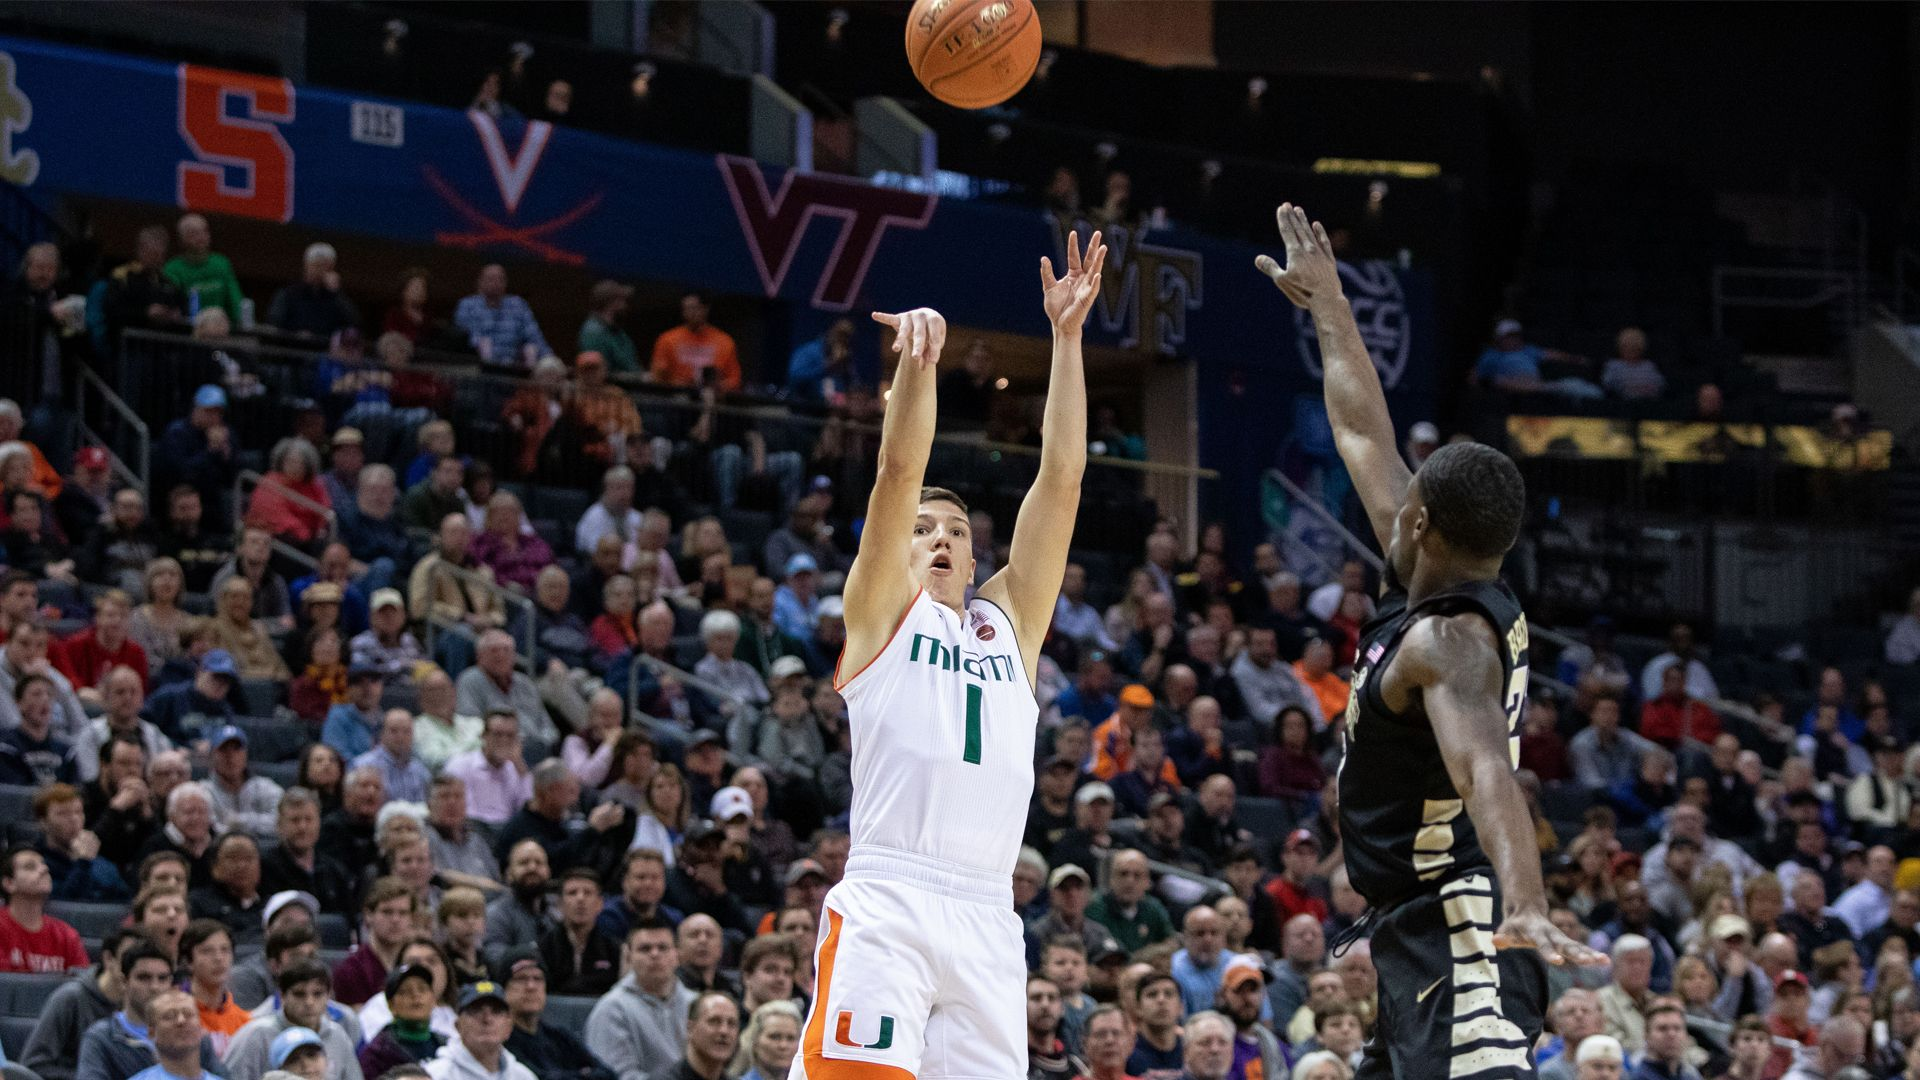 MBB Downs Wake Forest at ACC Tourney, 79-71